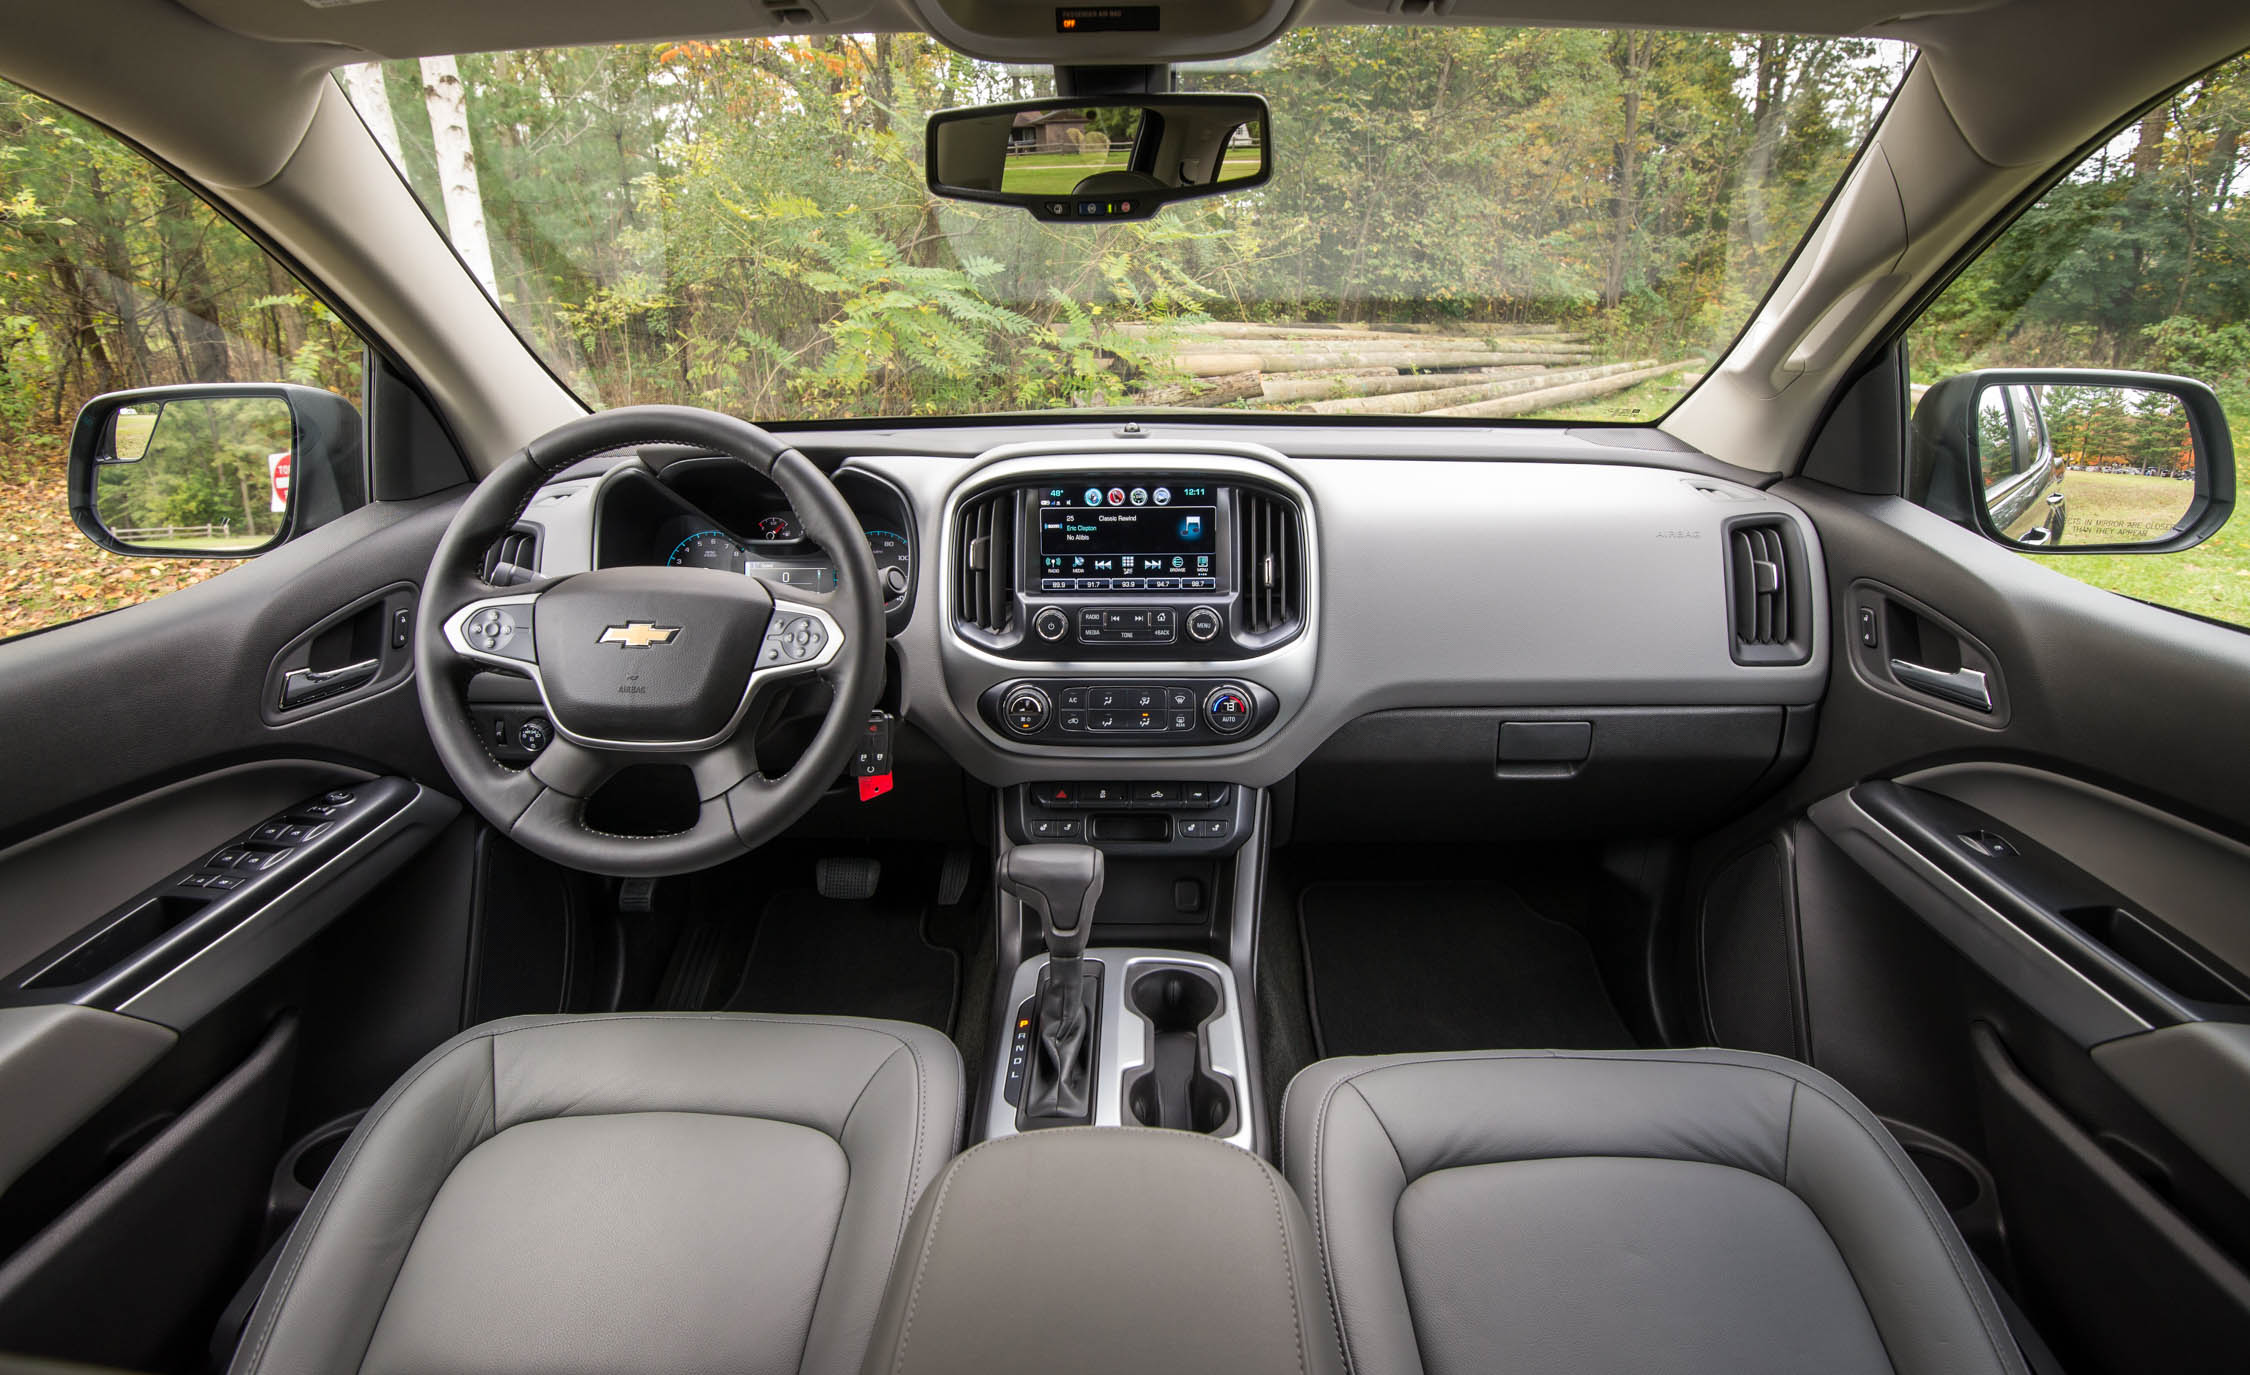 2017 Chevrolet Colorado LT Interior (View 7 of 41)